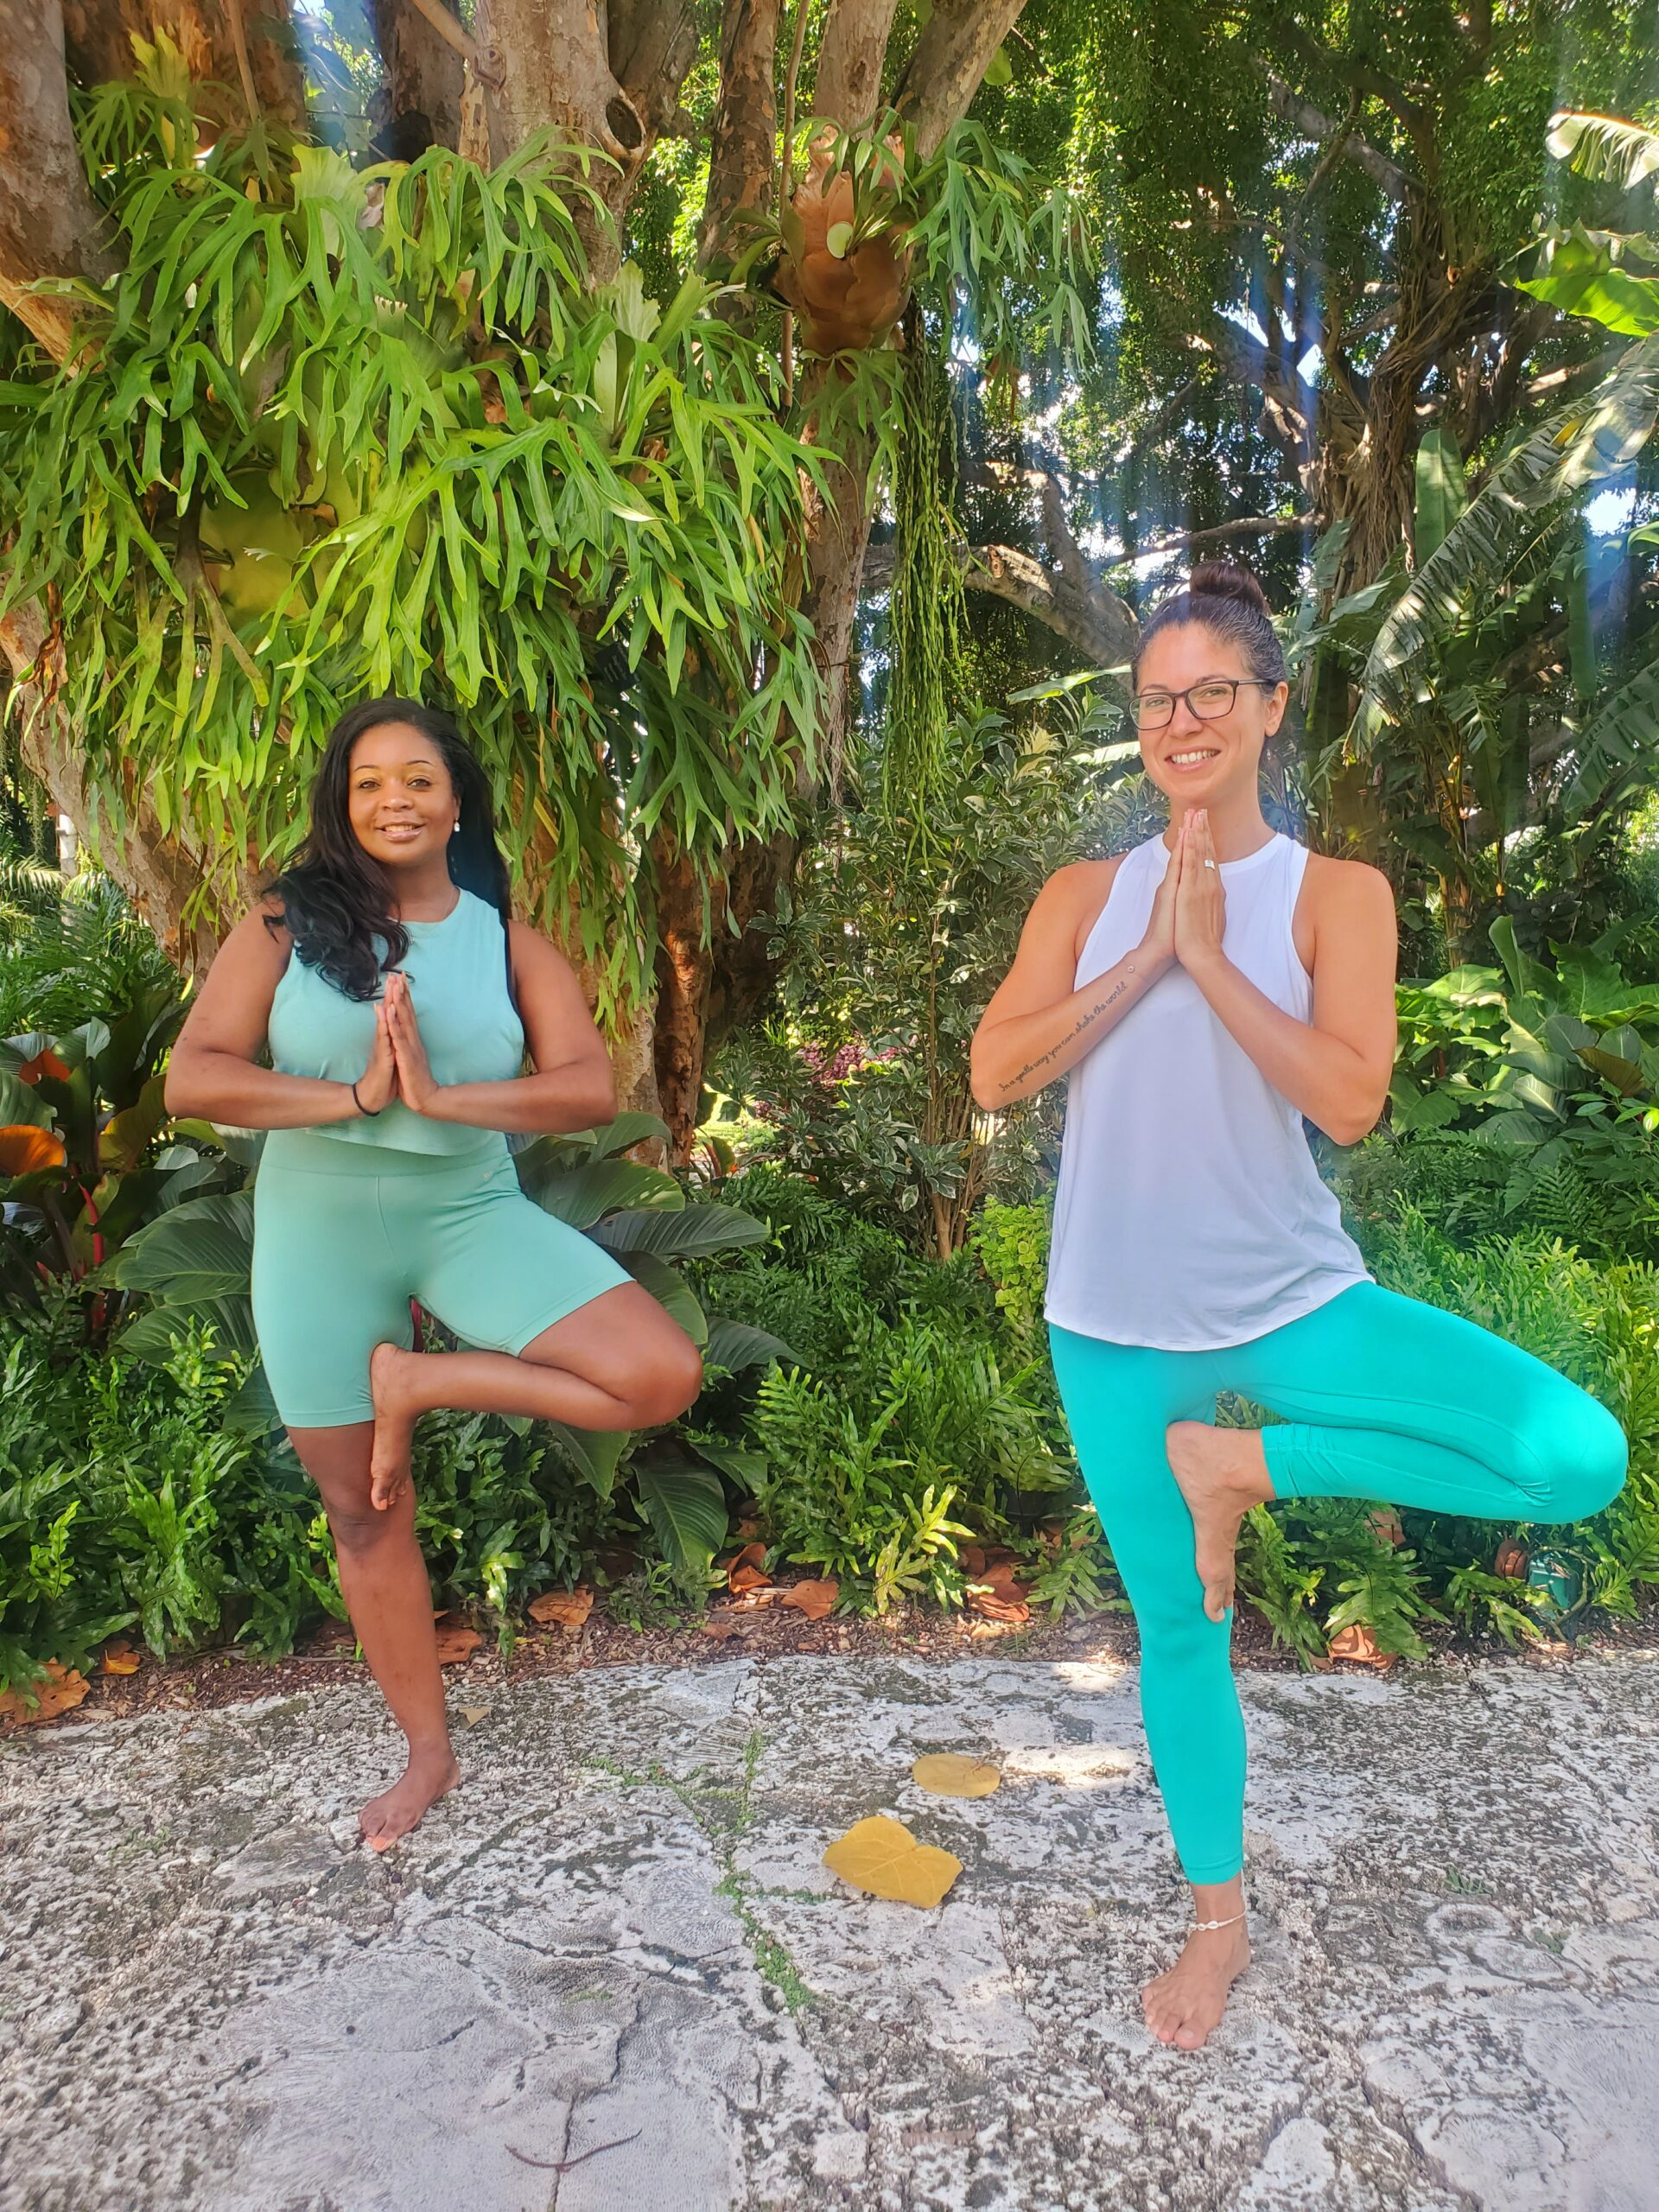 Erin and yoga instructor doing tree pose